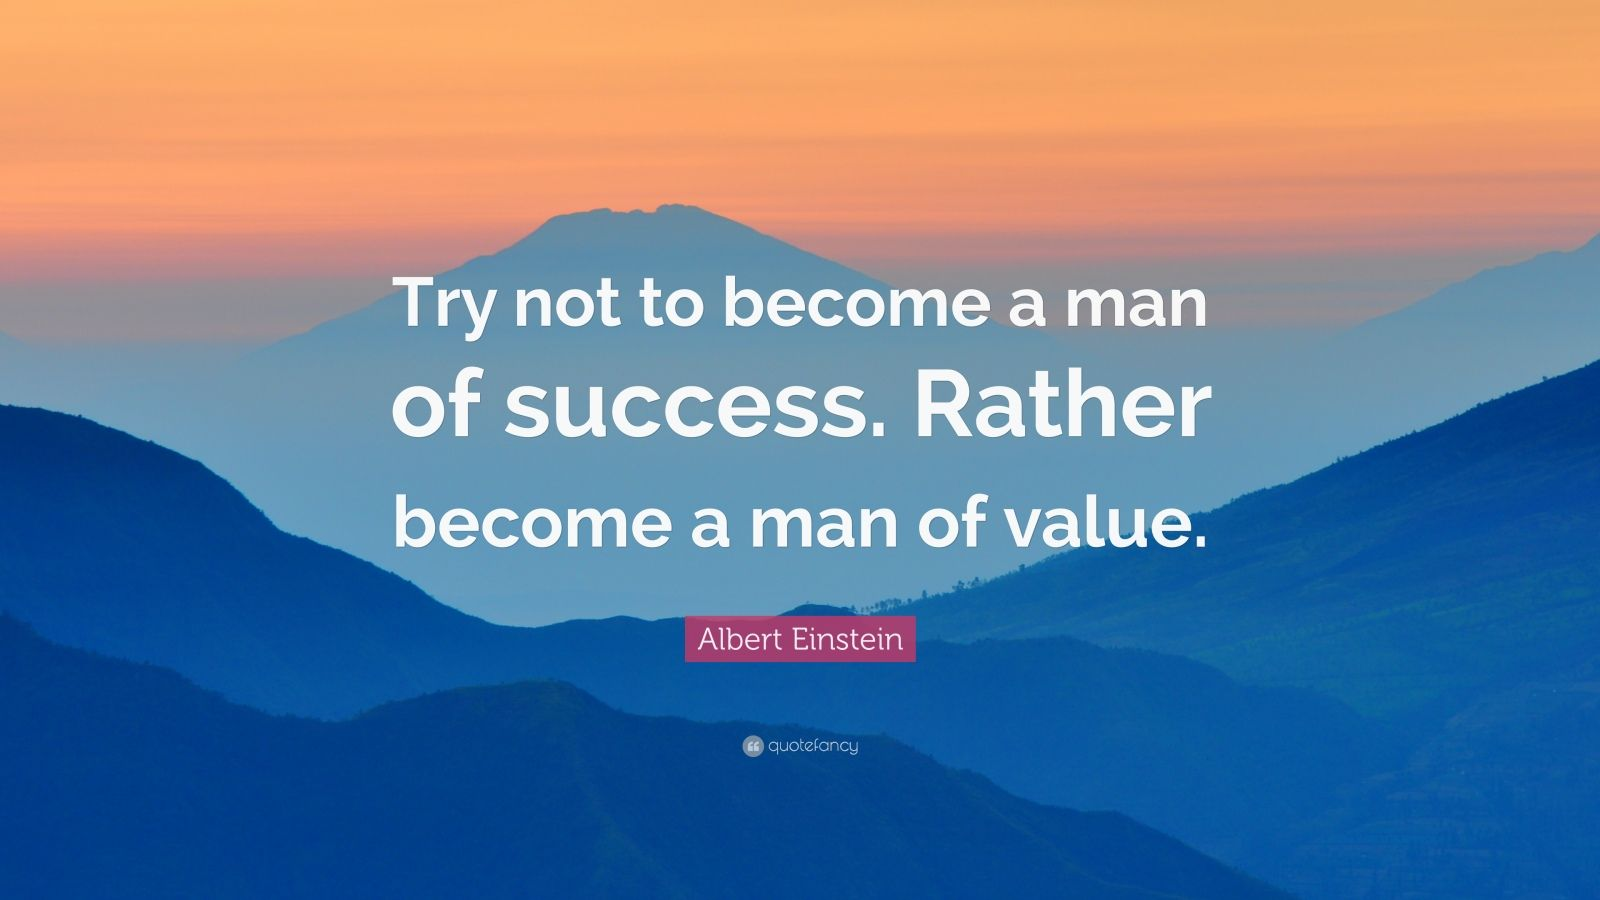 Persistence Quotes Wallpapers Albert Einstein Quote Try Not To Become A Man Of Success